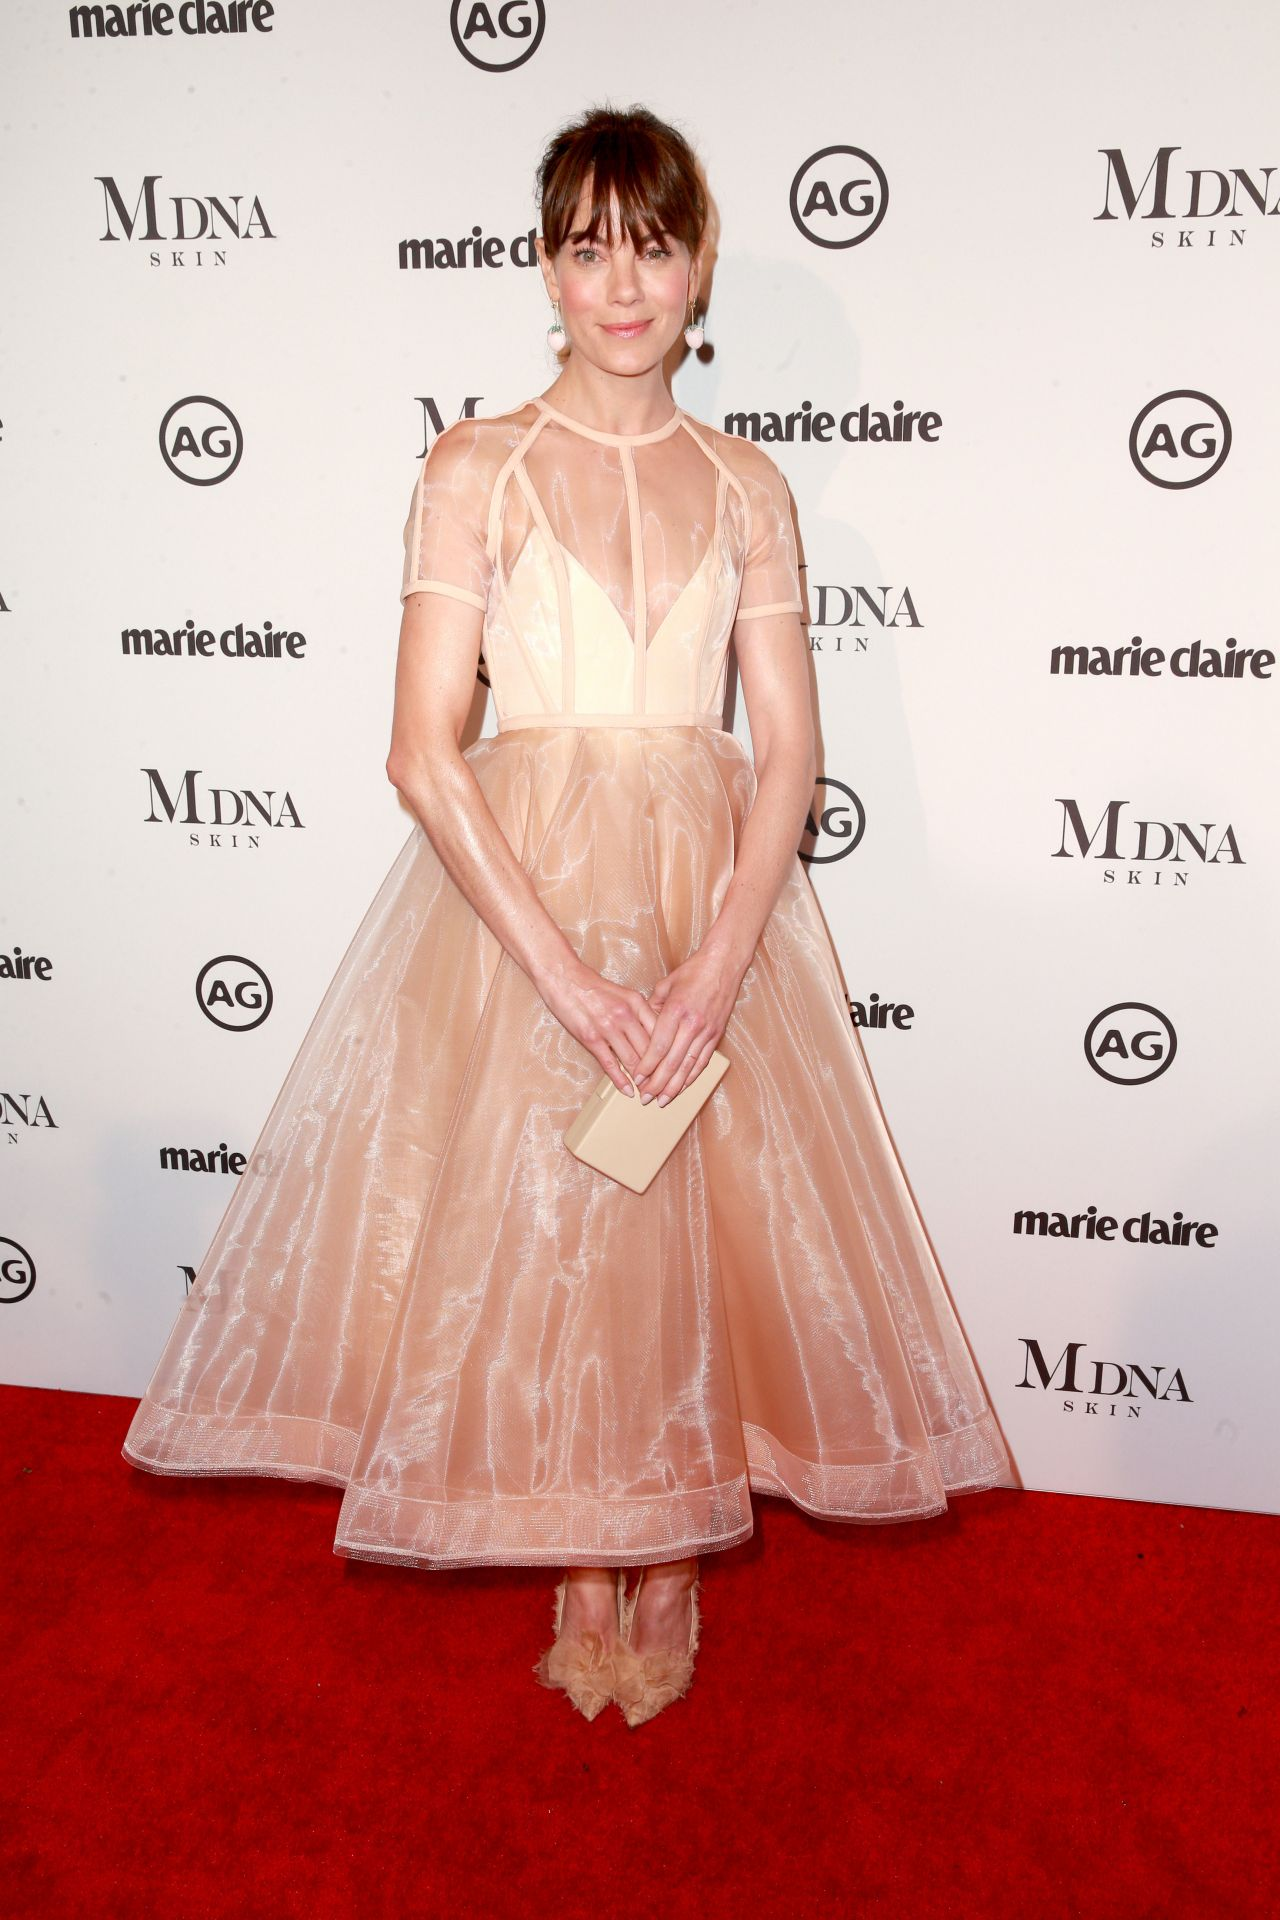 http://celebmafia.com/wp-content/uploads/2018/01/michelle-monaghan-marie-claire-image-makers-awards-in-los-angeles-4.jpg